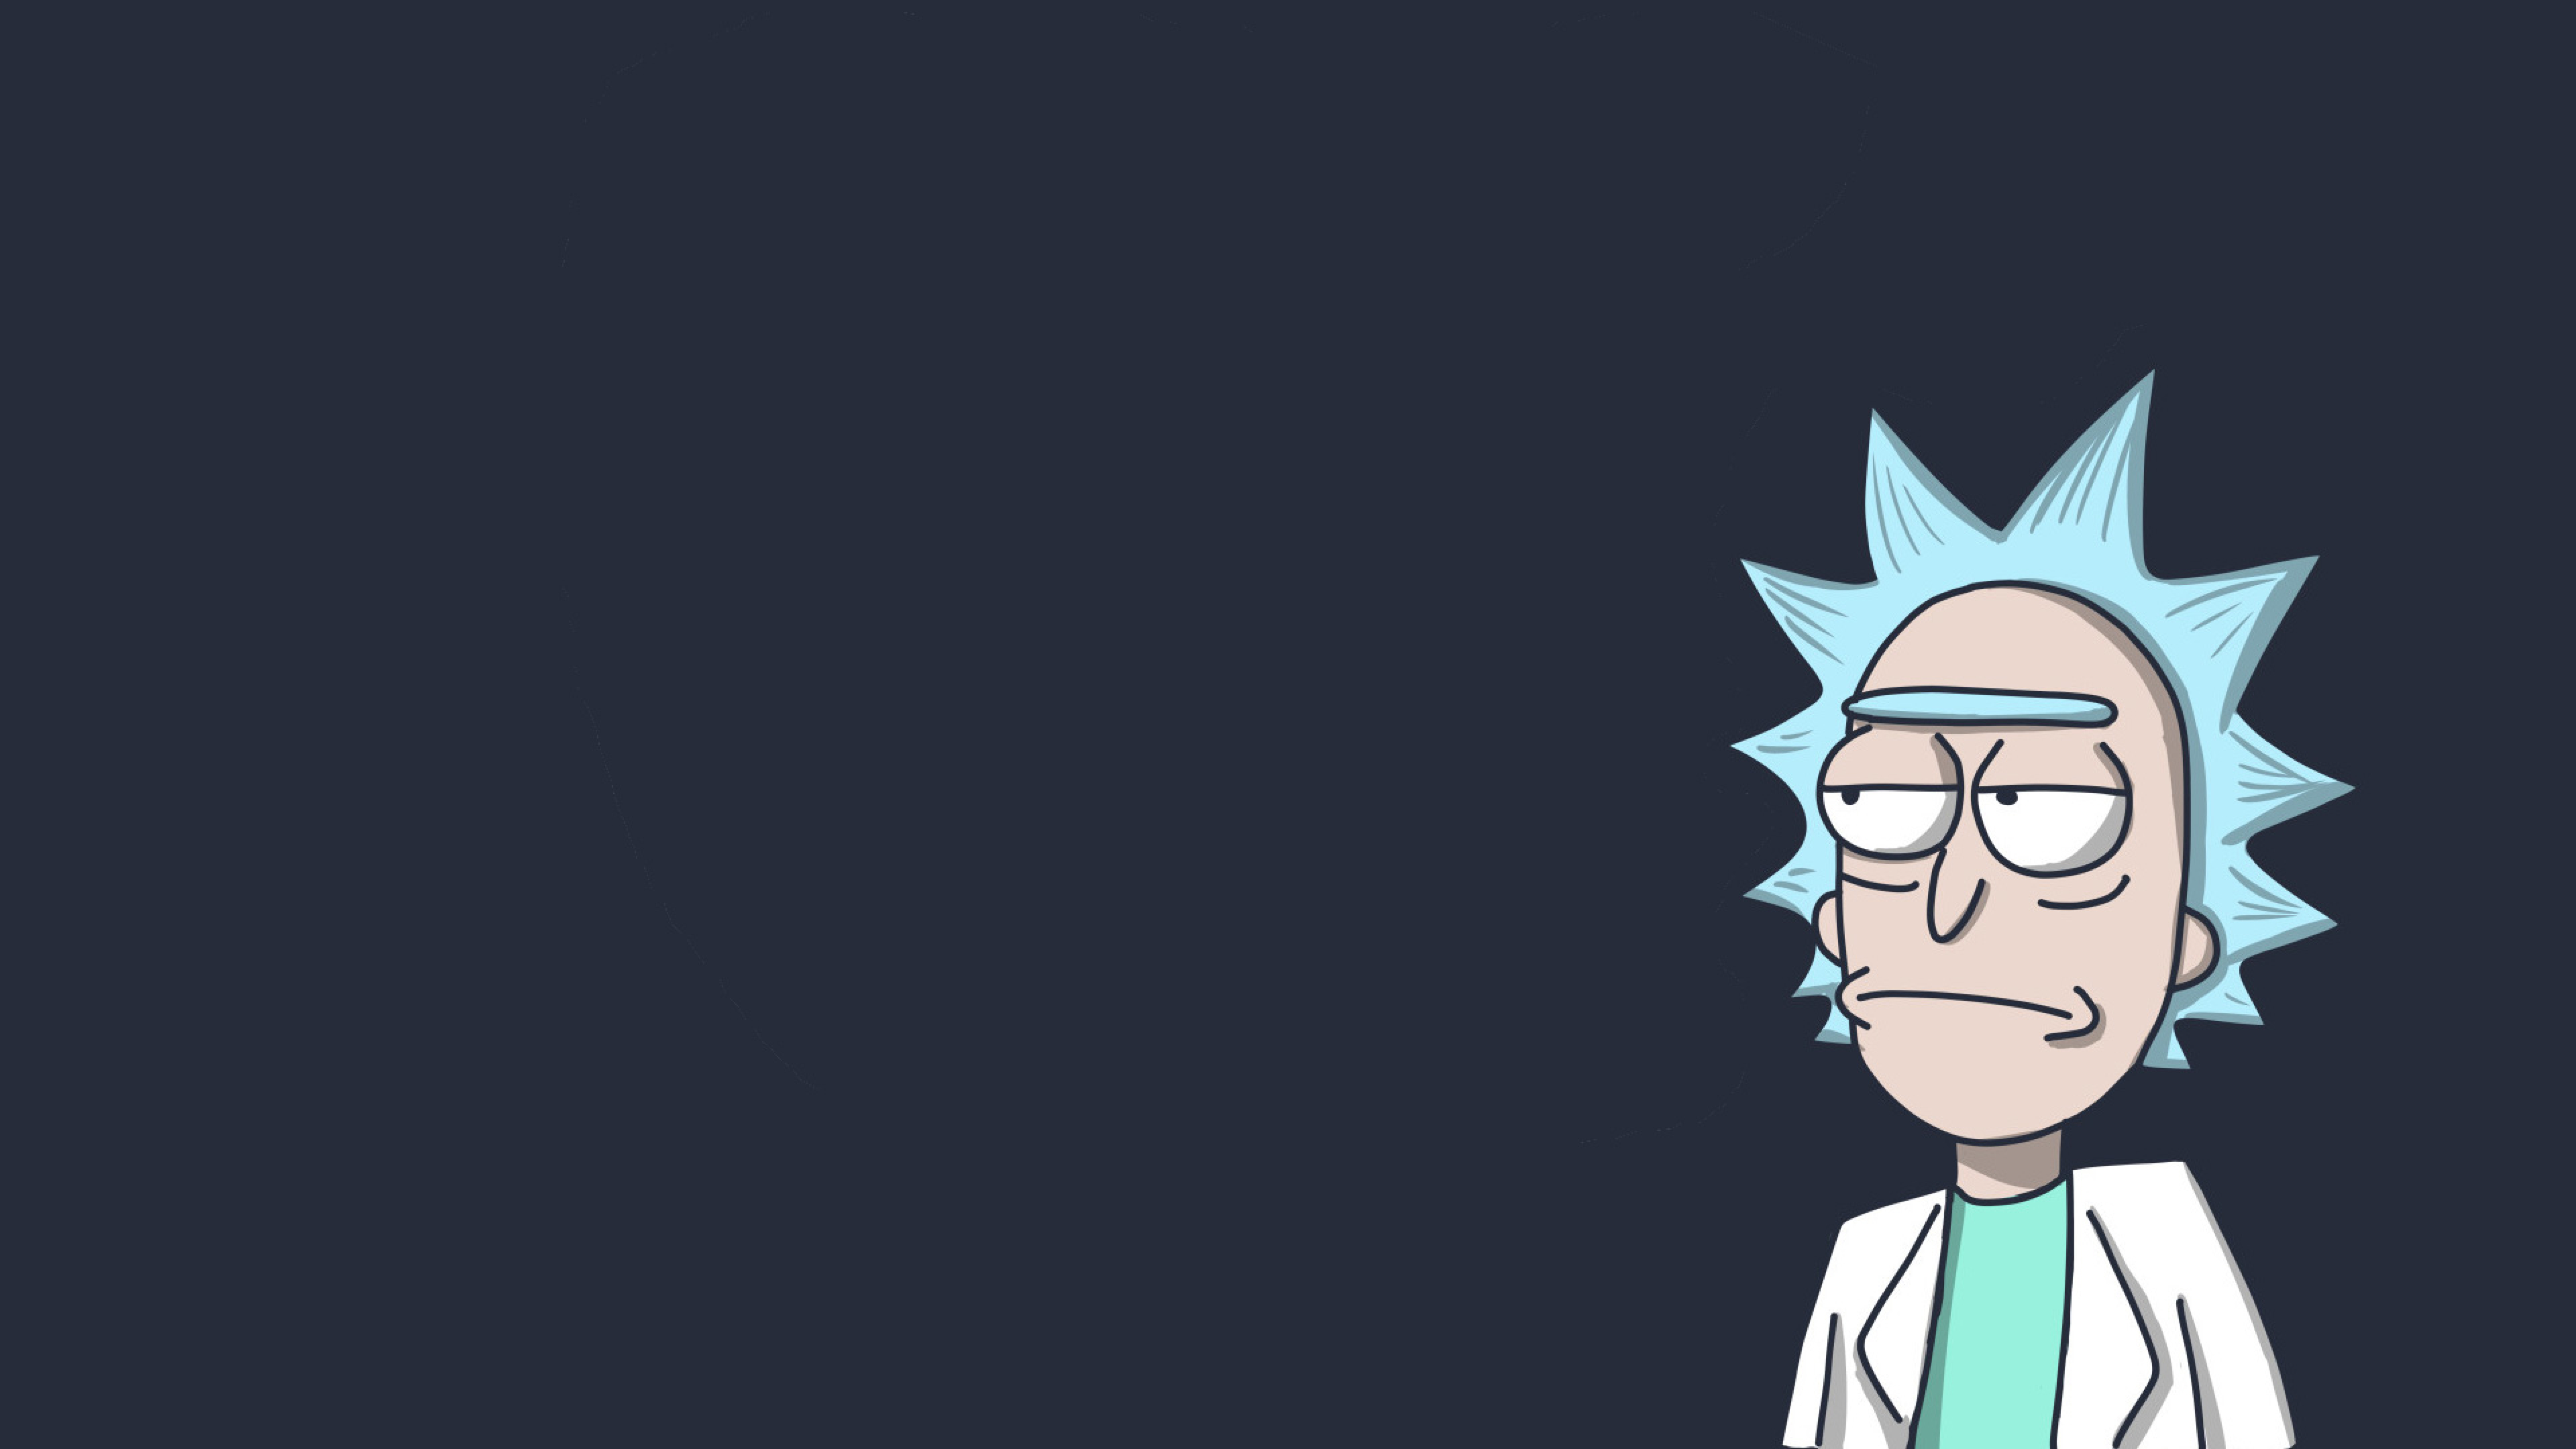 Download rick in rick and morty 2048x1152 resolution full for Sfondi 2048x1152